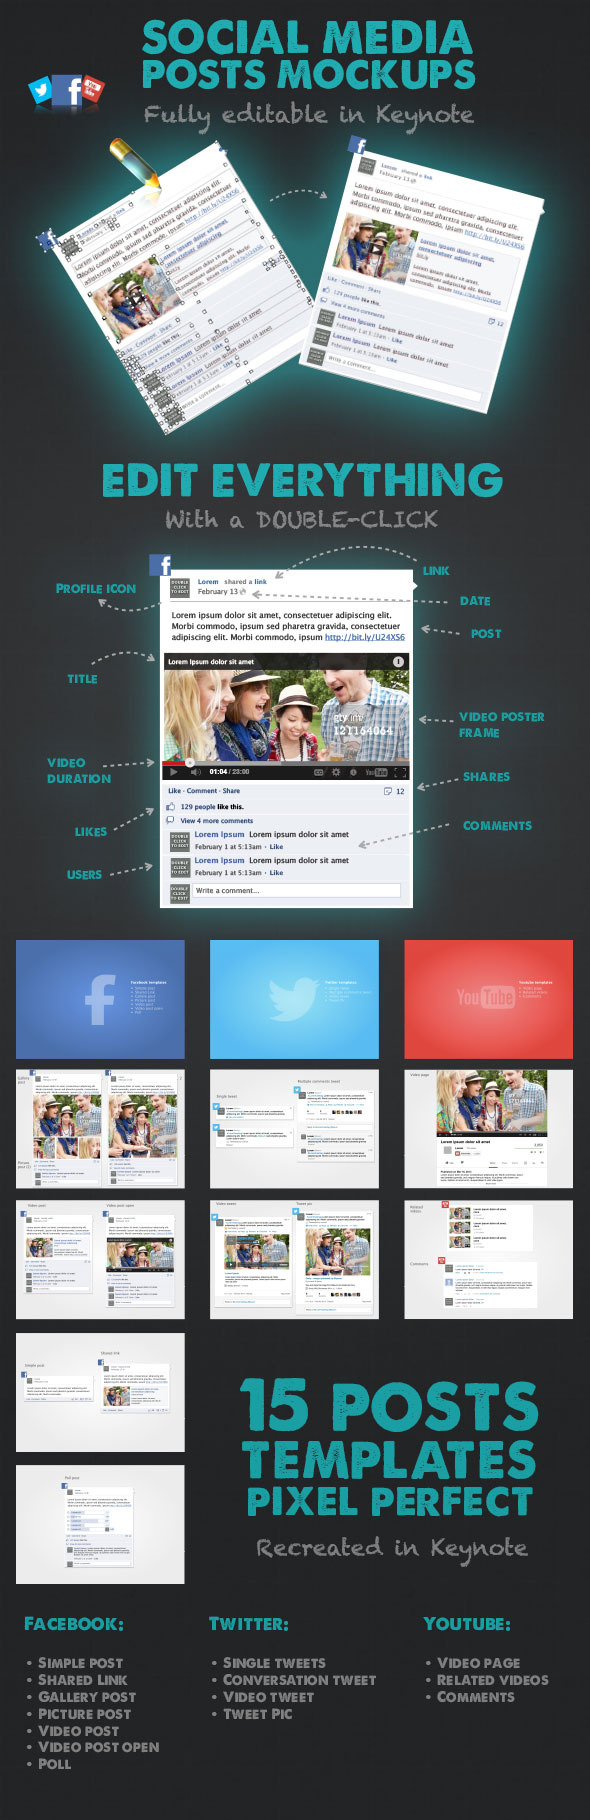 15 Social Media Posts Editable Mockups - Keynote Templates Presentation Templates